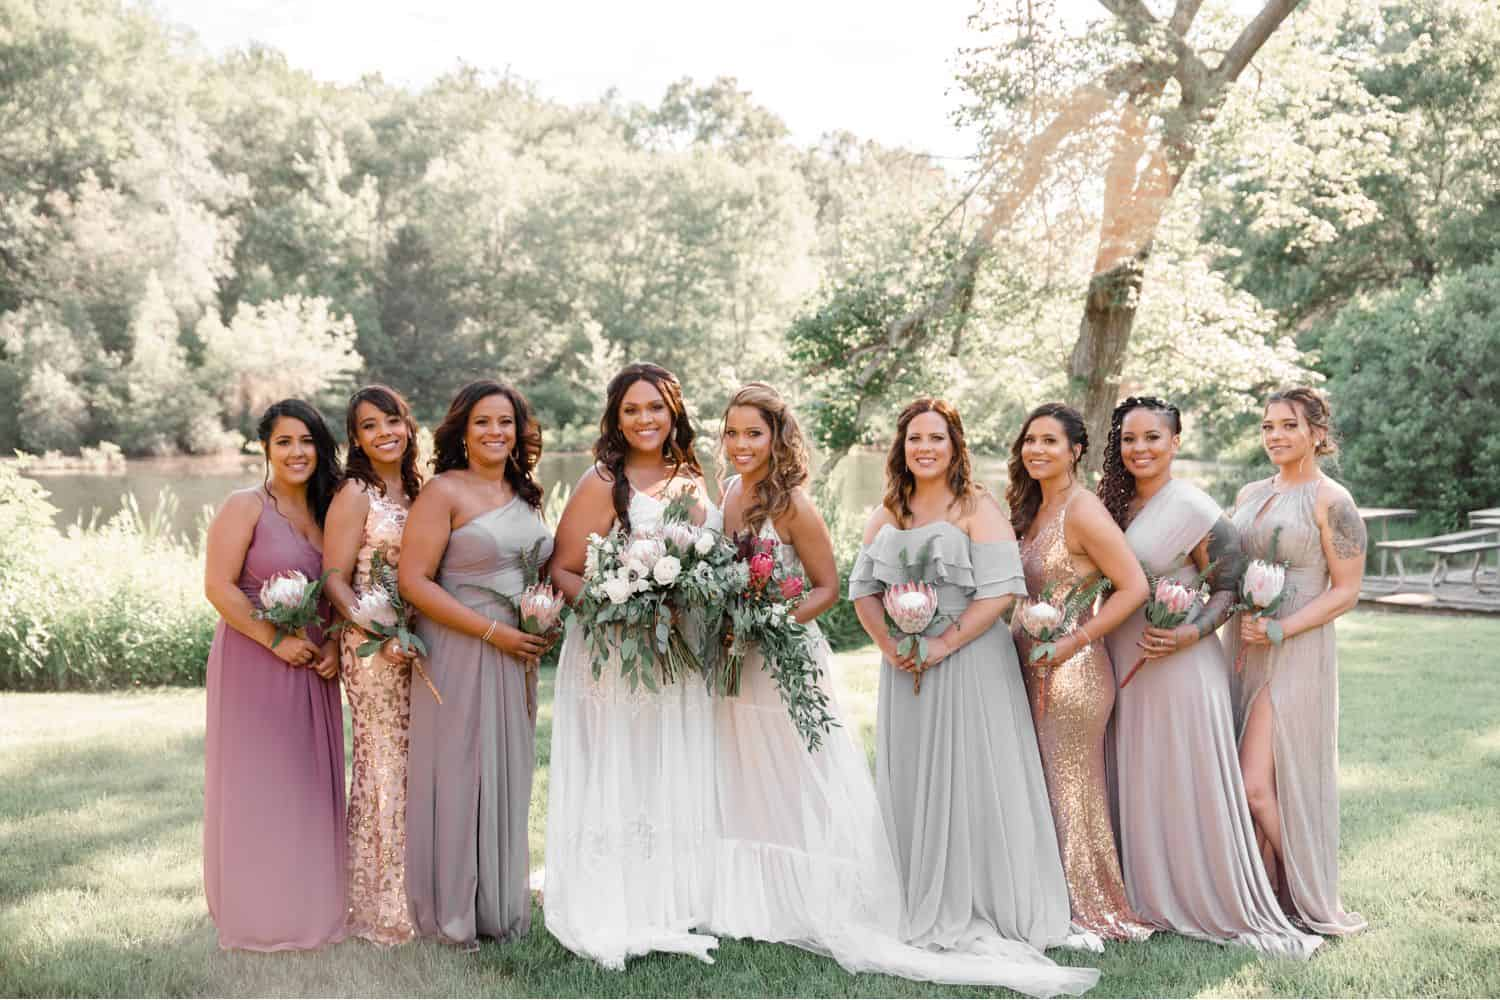 A group photo of two brides and their wedding party